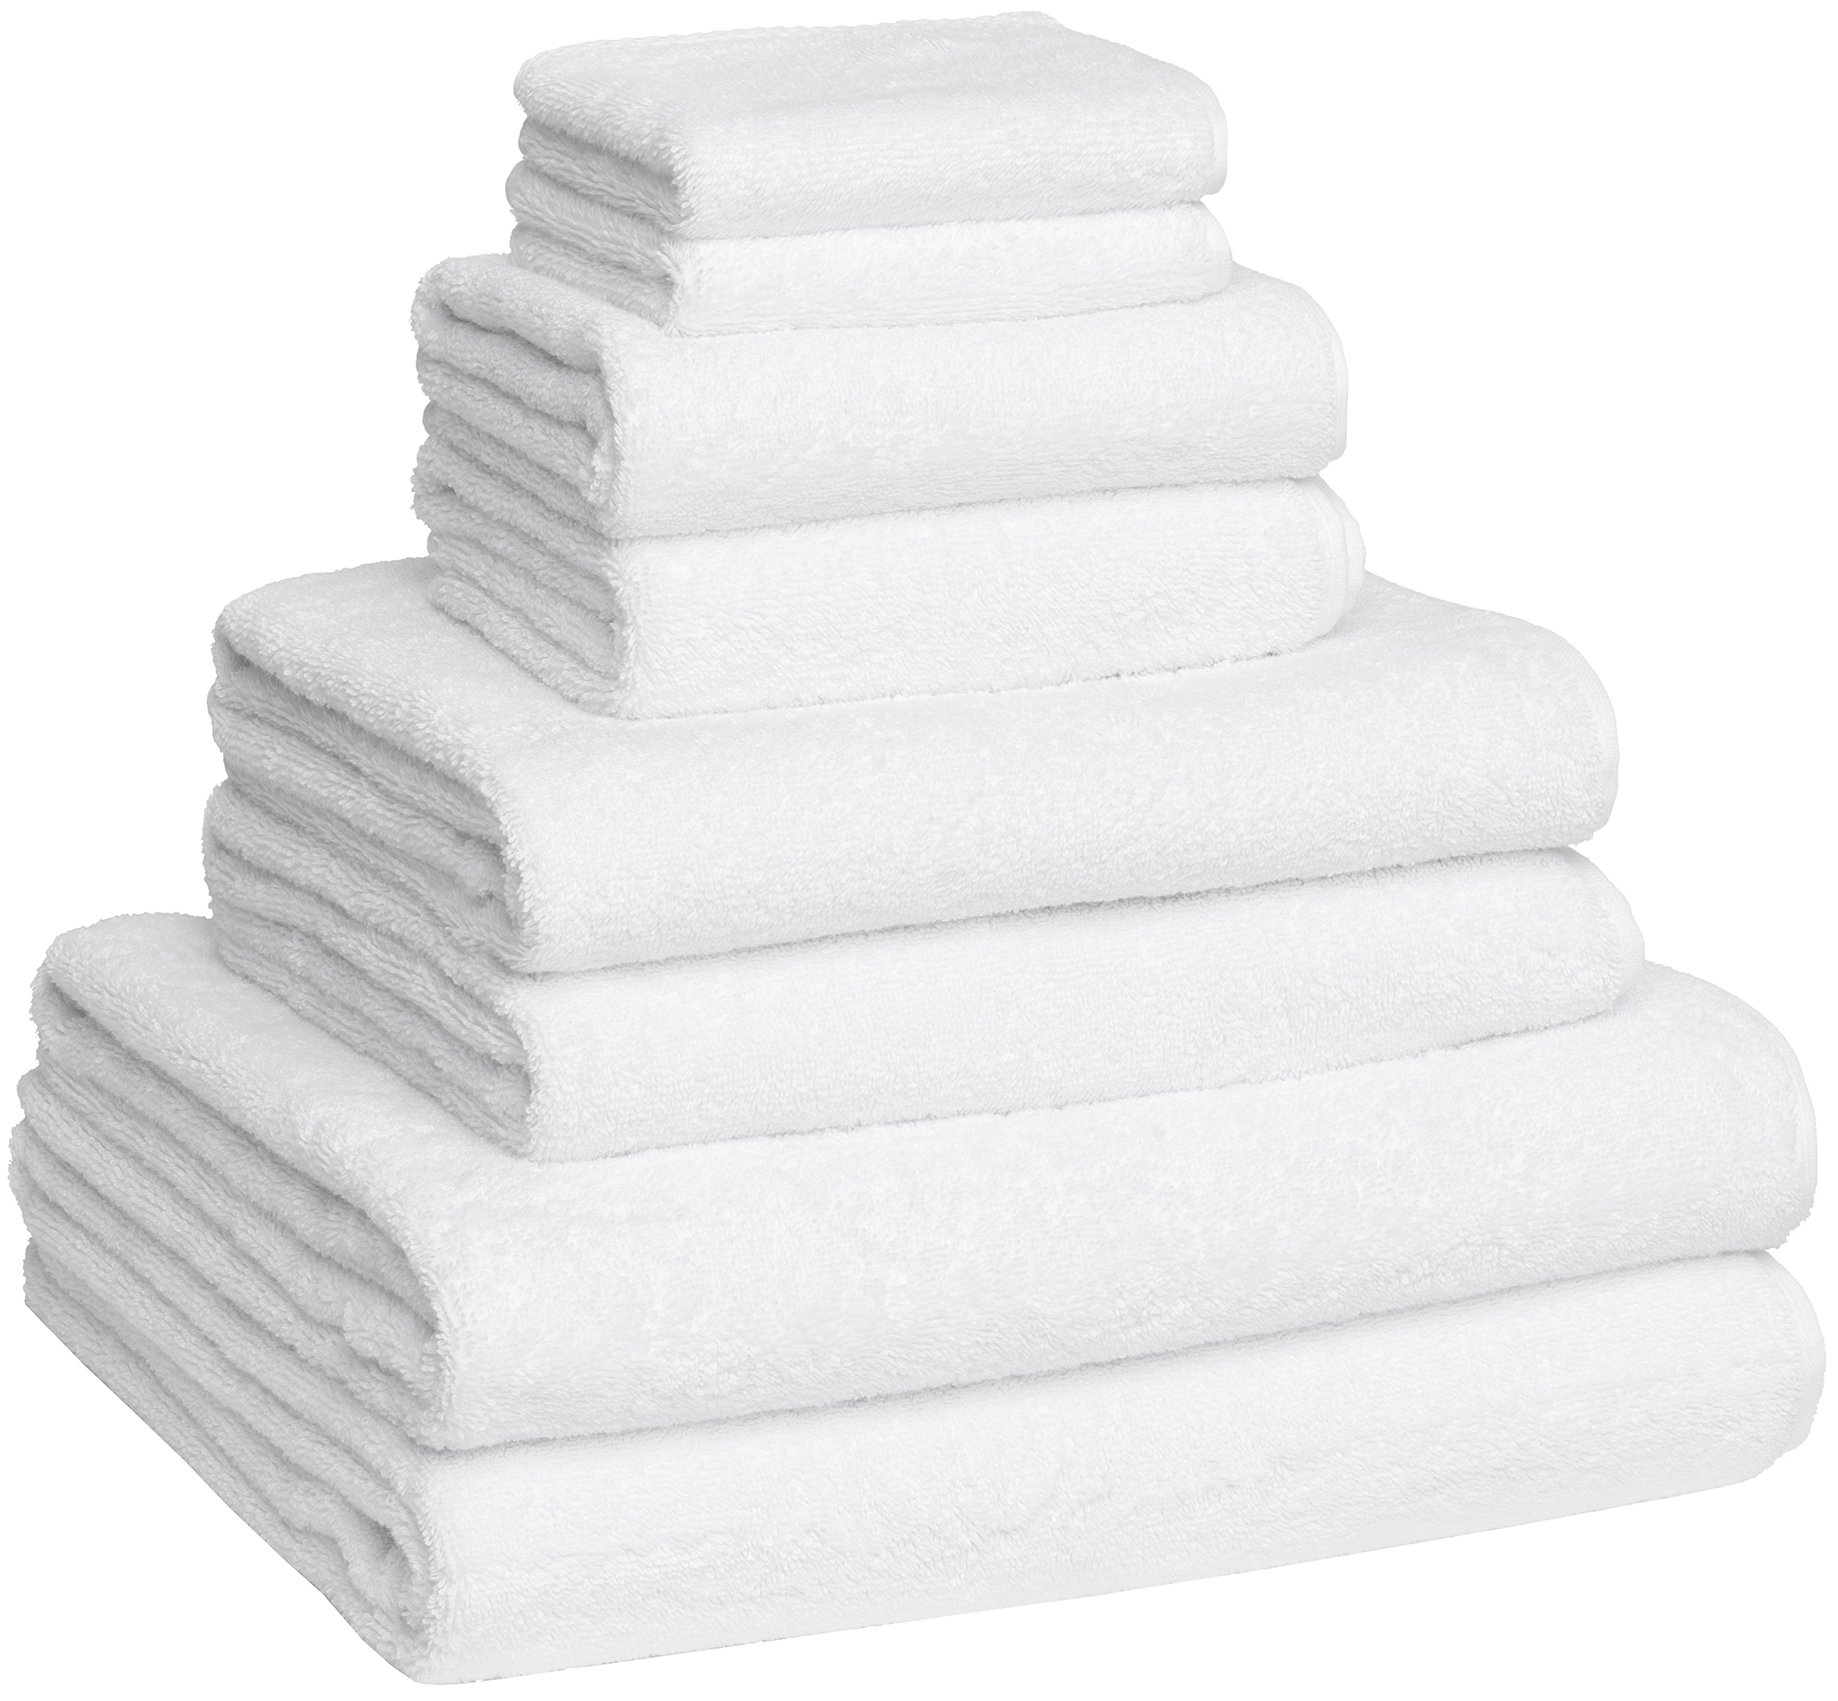 Fast Drying Extra Large Bath Towel Set, Decorative & Luxury Premium Turkish Cotton Towels for Clearance - Spa & Hotel Quality - Pack of 8 Including 2 Oversized Bath Sheets (30x60) - White